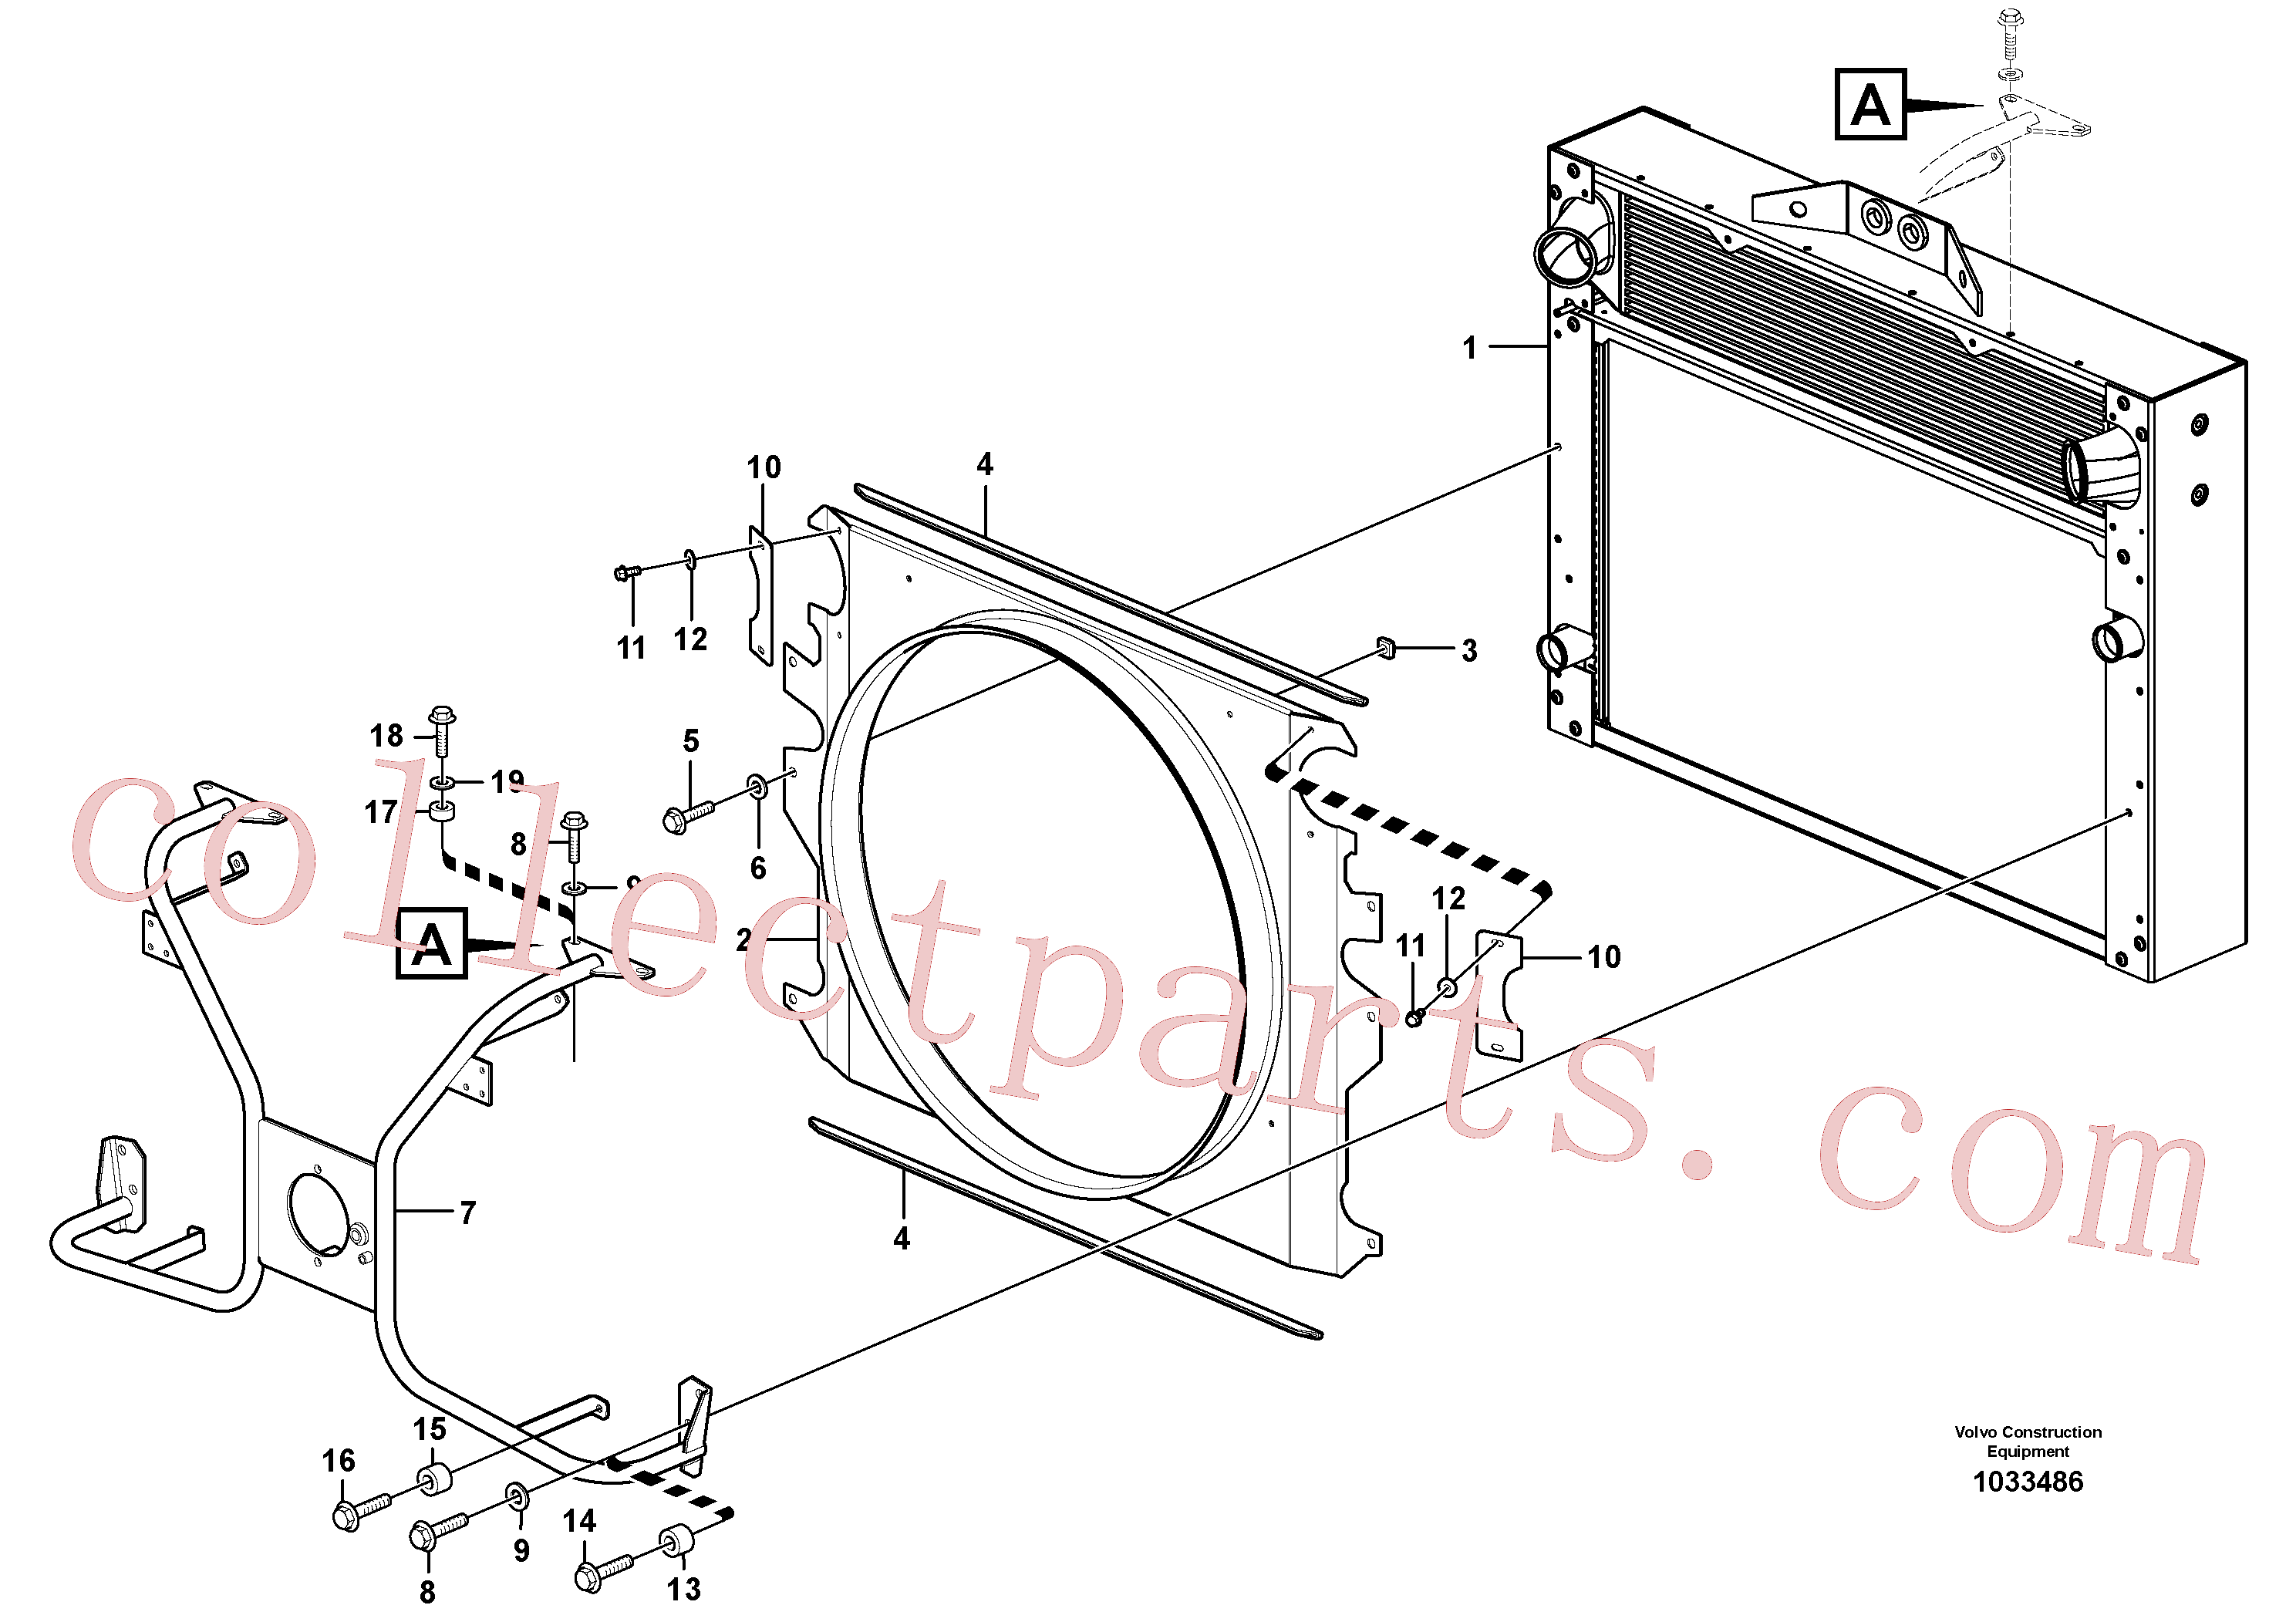 VOE947760 for Volvo Fan shroud with fitting parts(1033486 assembly)